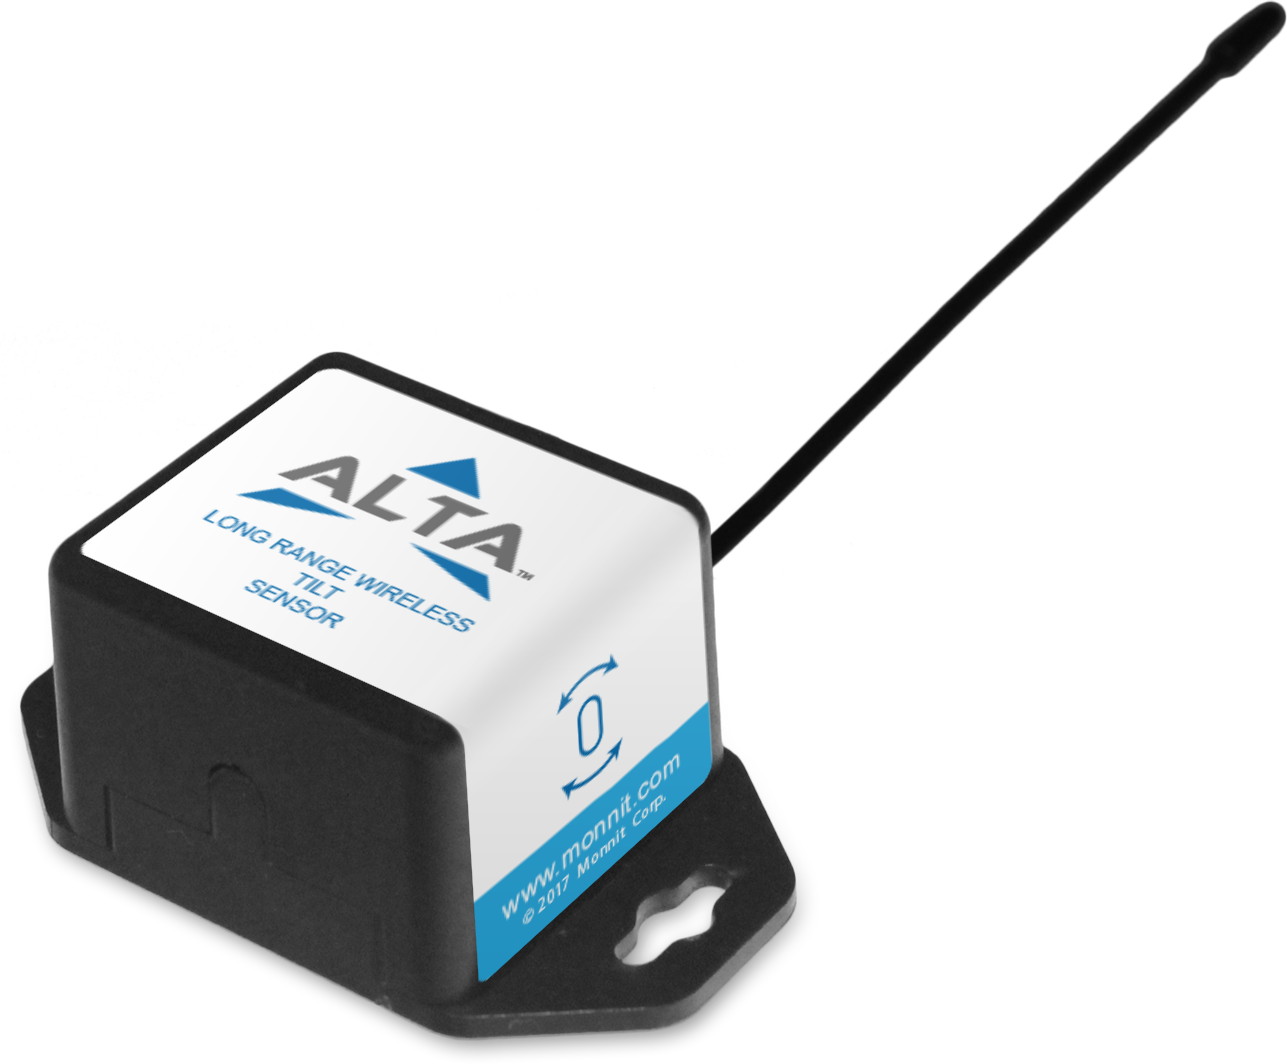 Wireless Accelerometer – Tilt Sensor